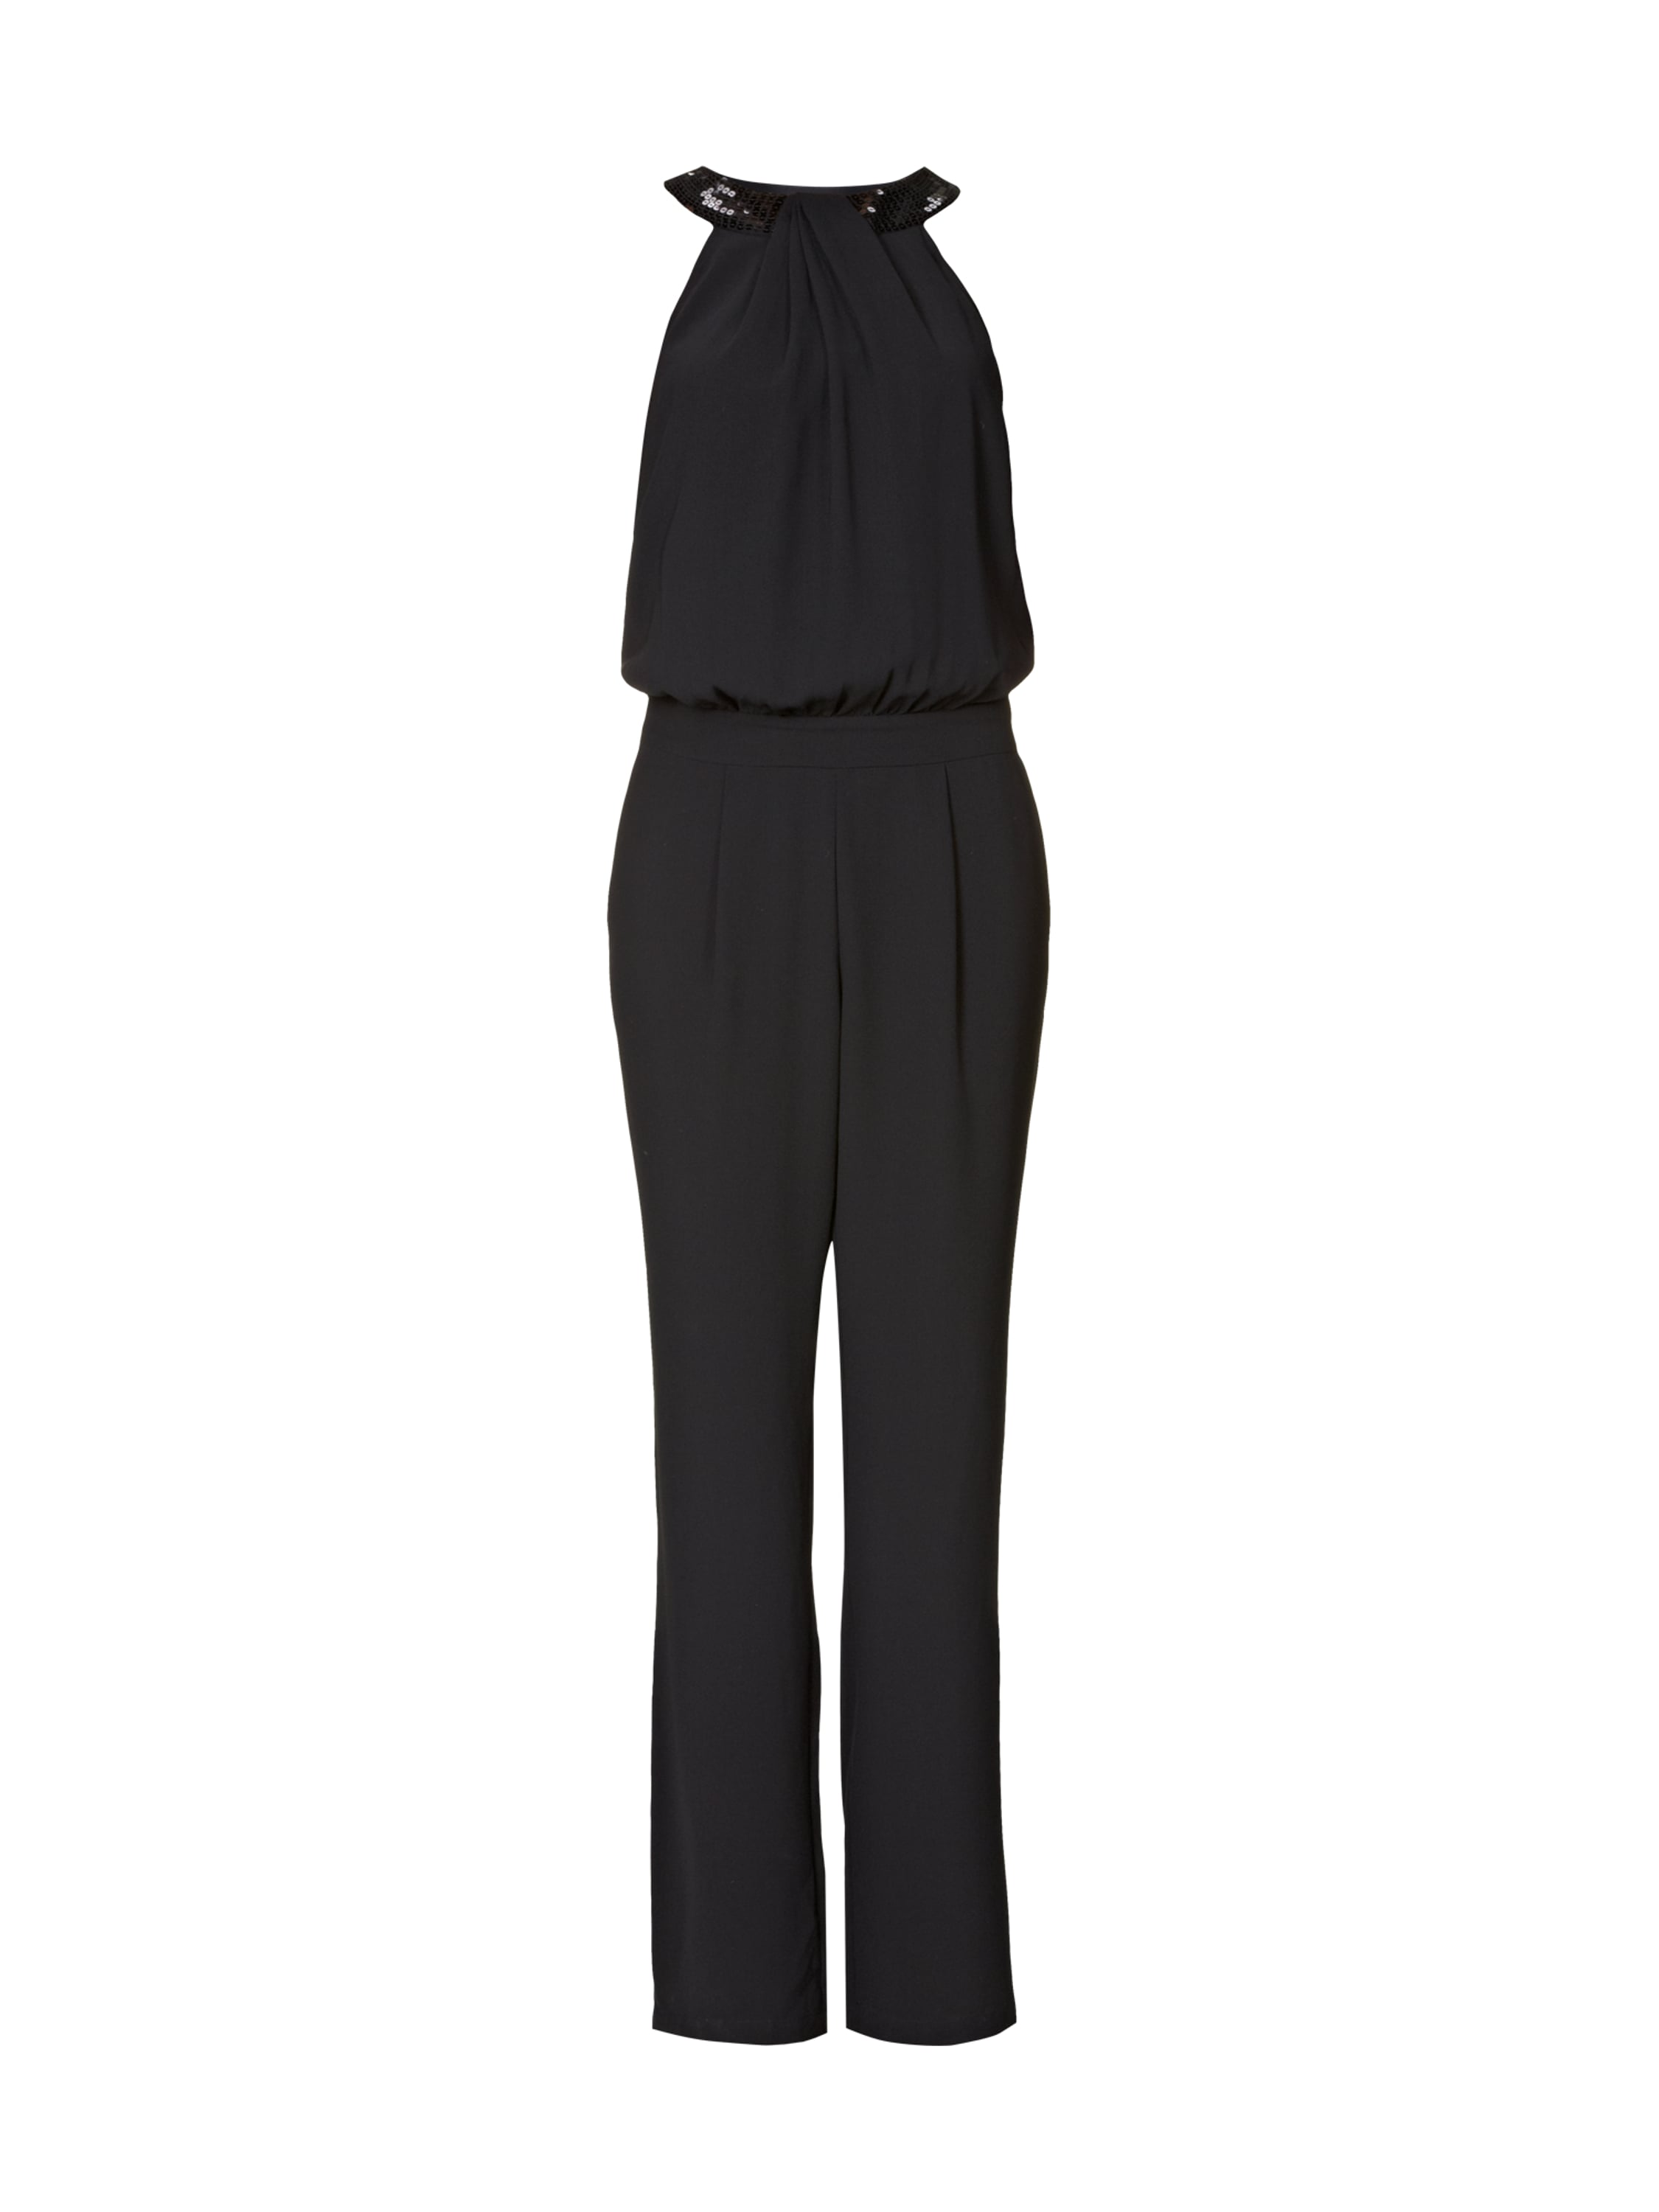 esprit collection jumpsuit im 2 in 1 look in grau schwarz online kaufen 8925469 p c online. Black Bedroom Furniture Sets. Home Design Ideas